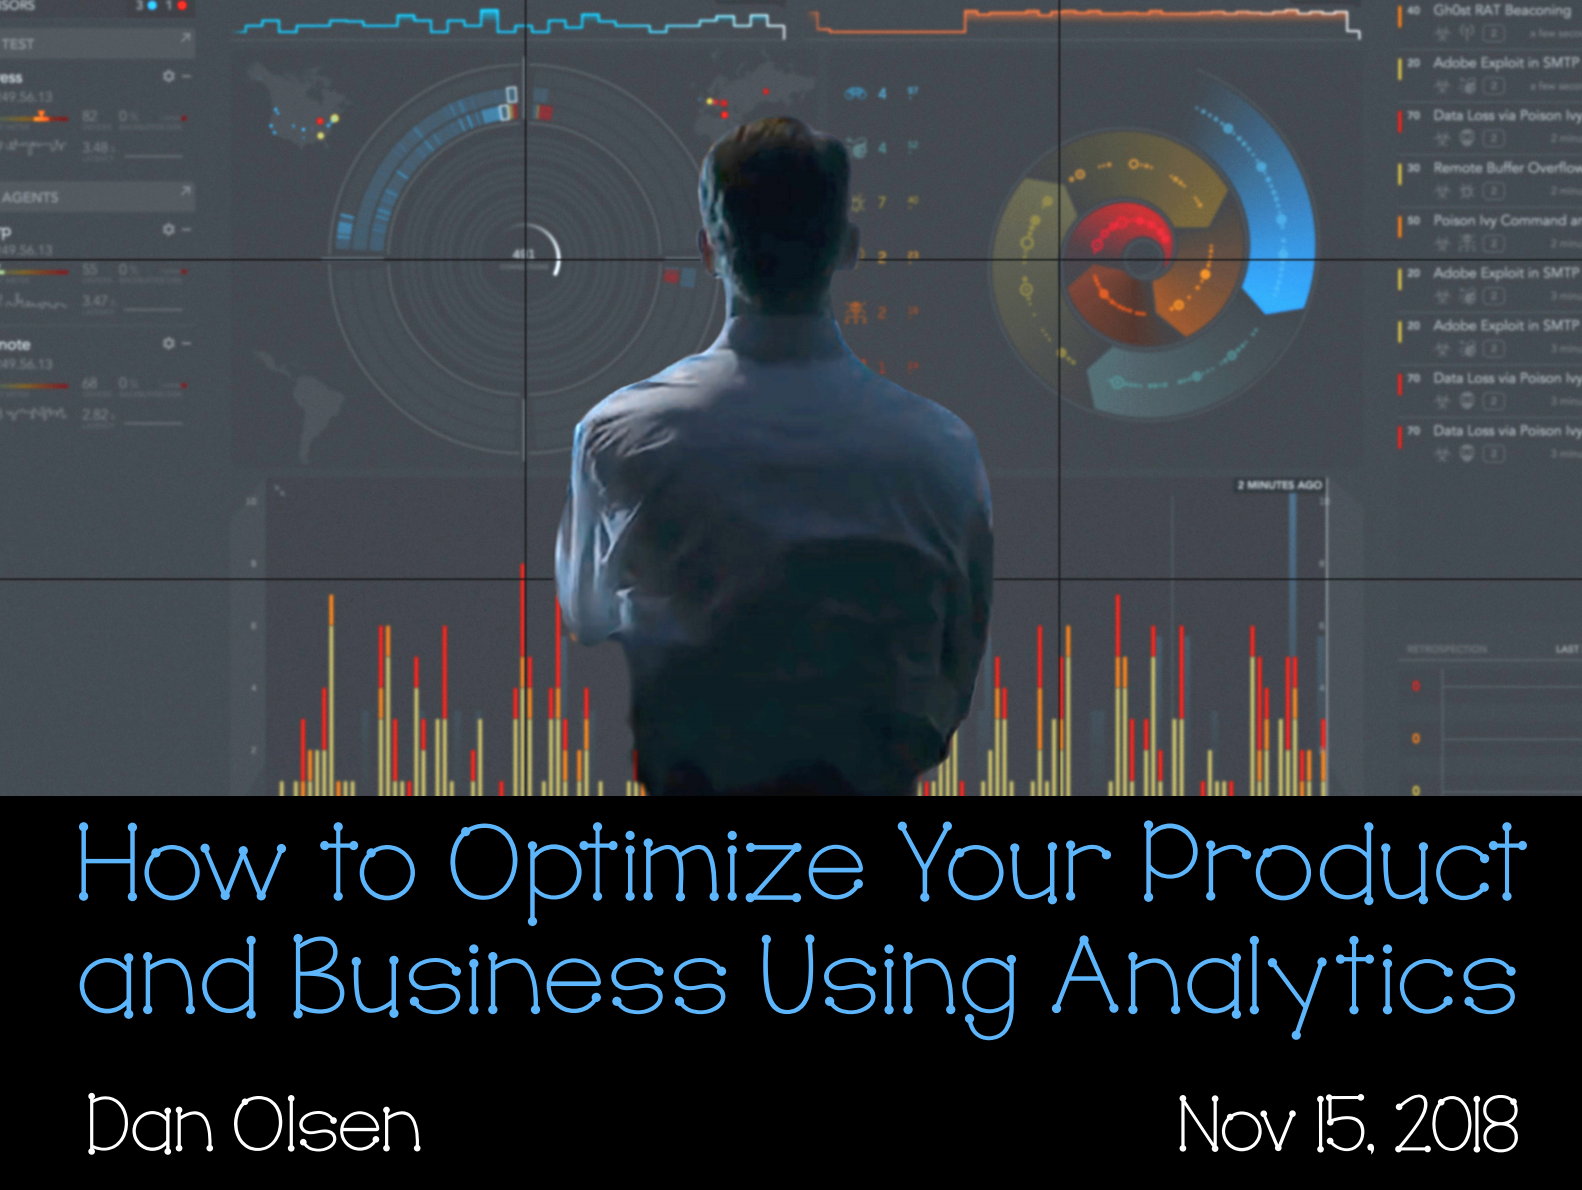 Dan Olsen: How to Optimize Your Product & Business Using Analytics